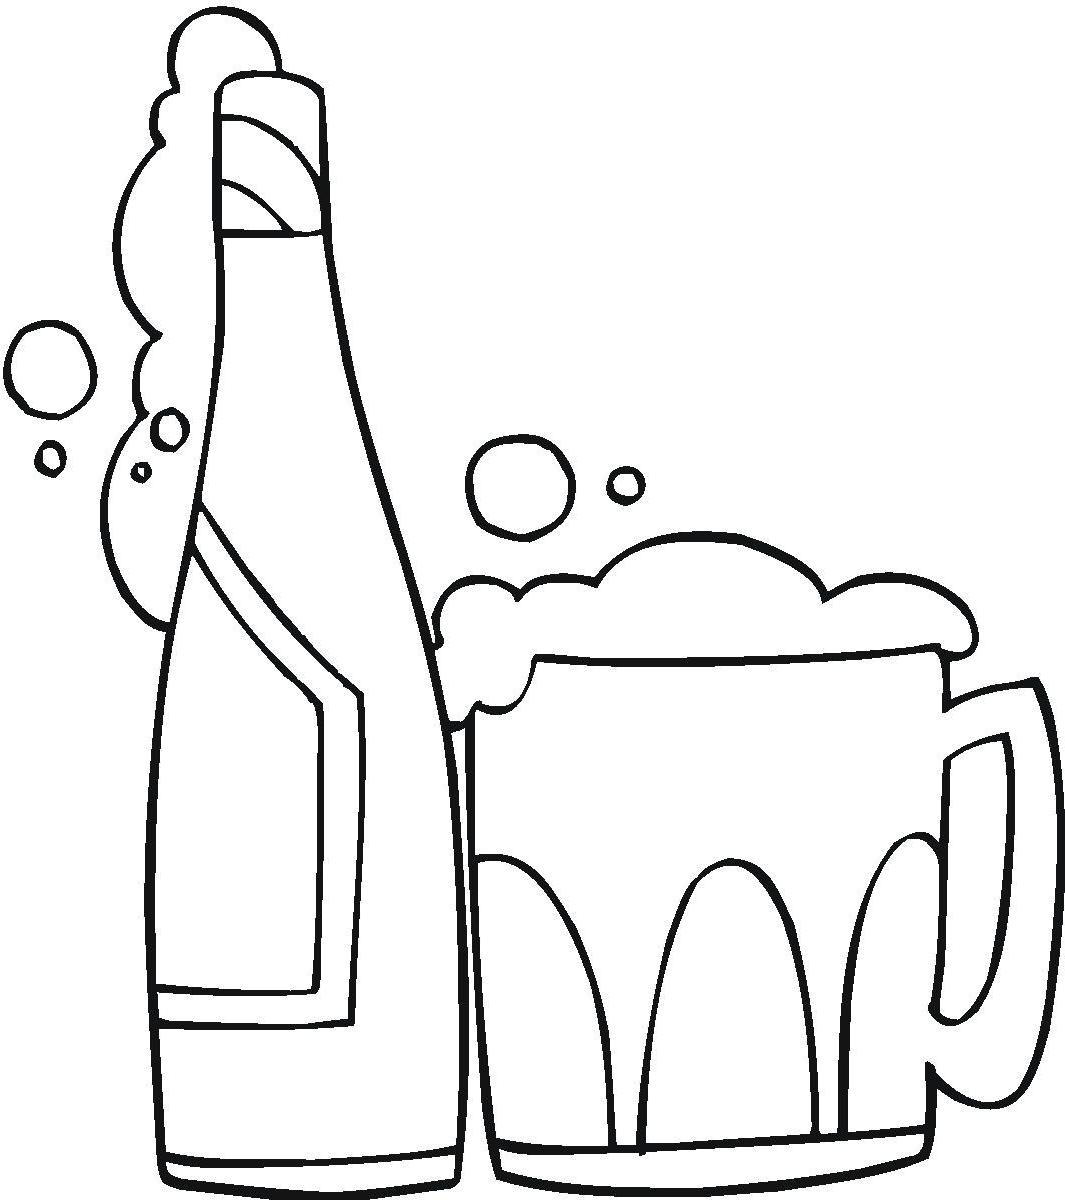 Download High Quality alcohol clipart white Transparent PNG.